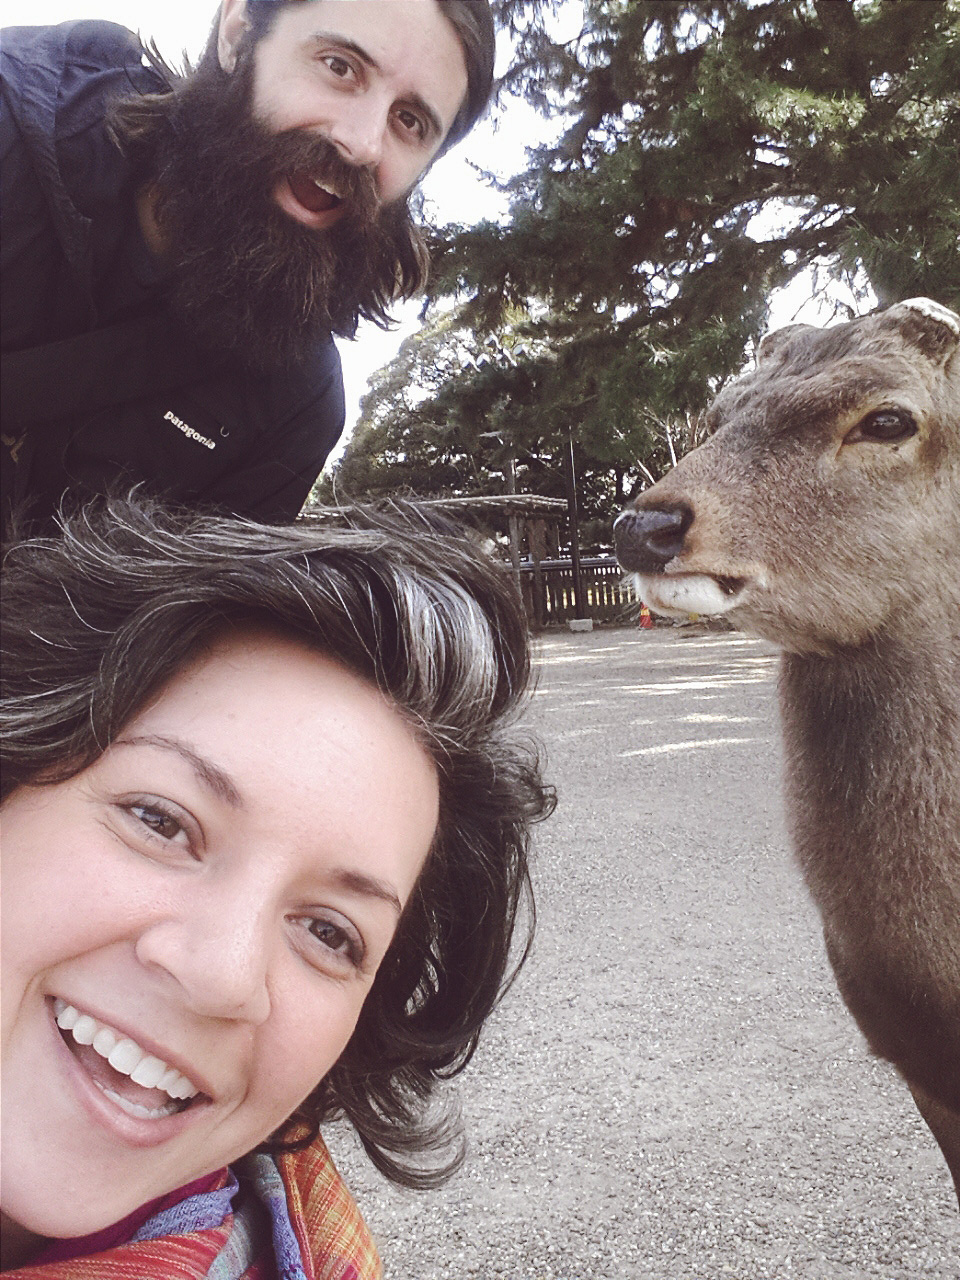 Took a daytrip to Nara Park to feed (and annoy) the Sika Deer  Cost: 150 yen / $1.50 for deer crackers